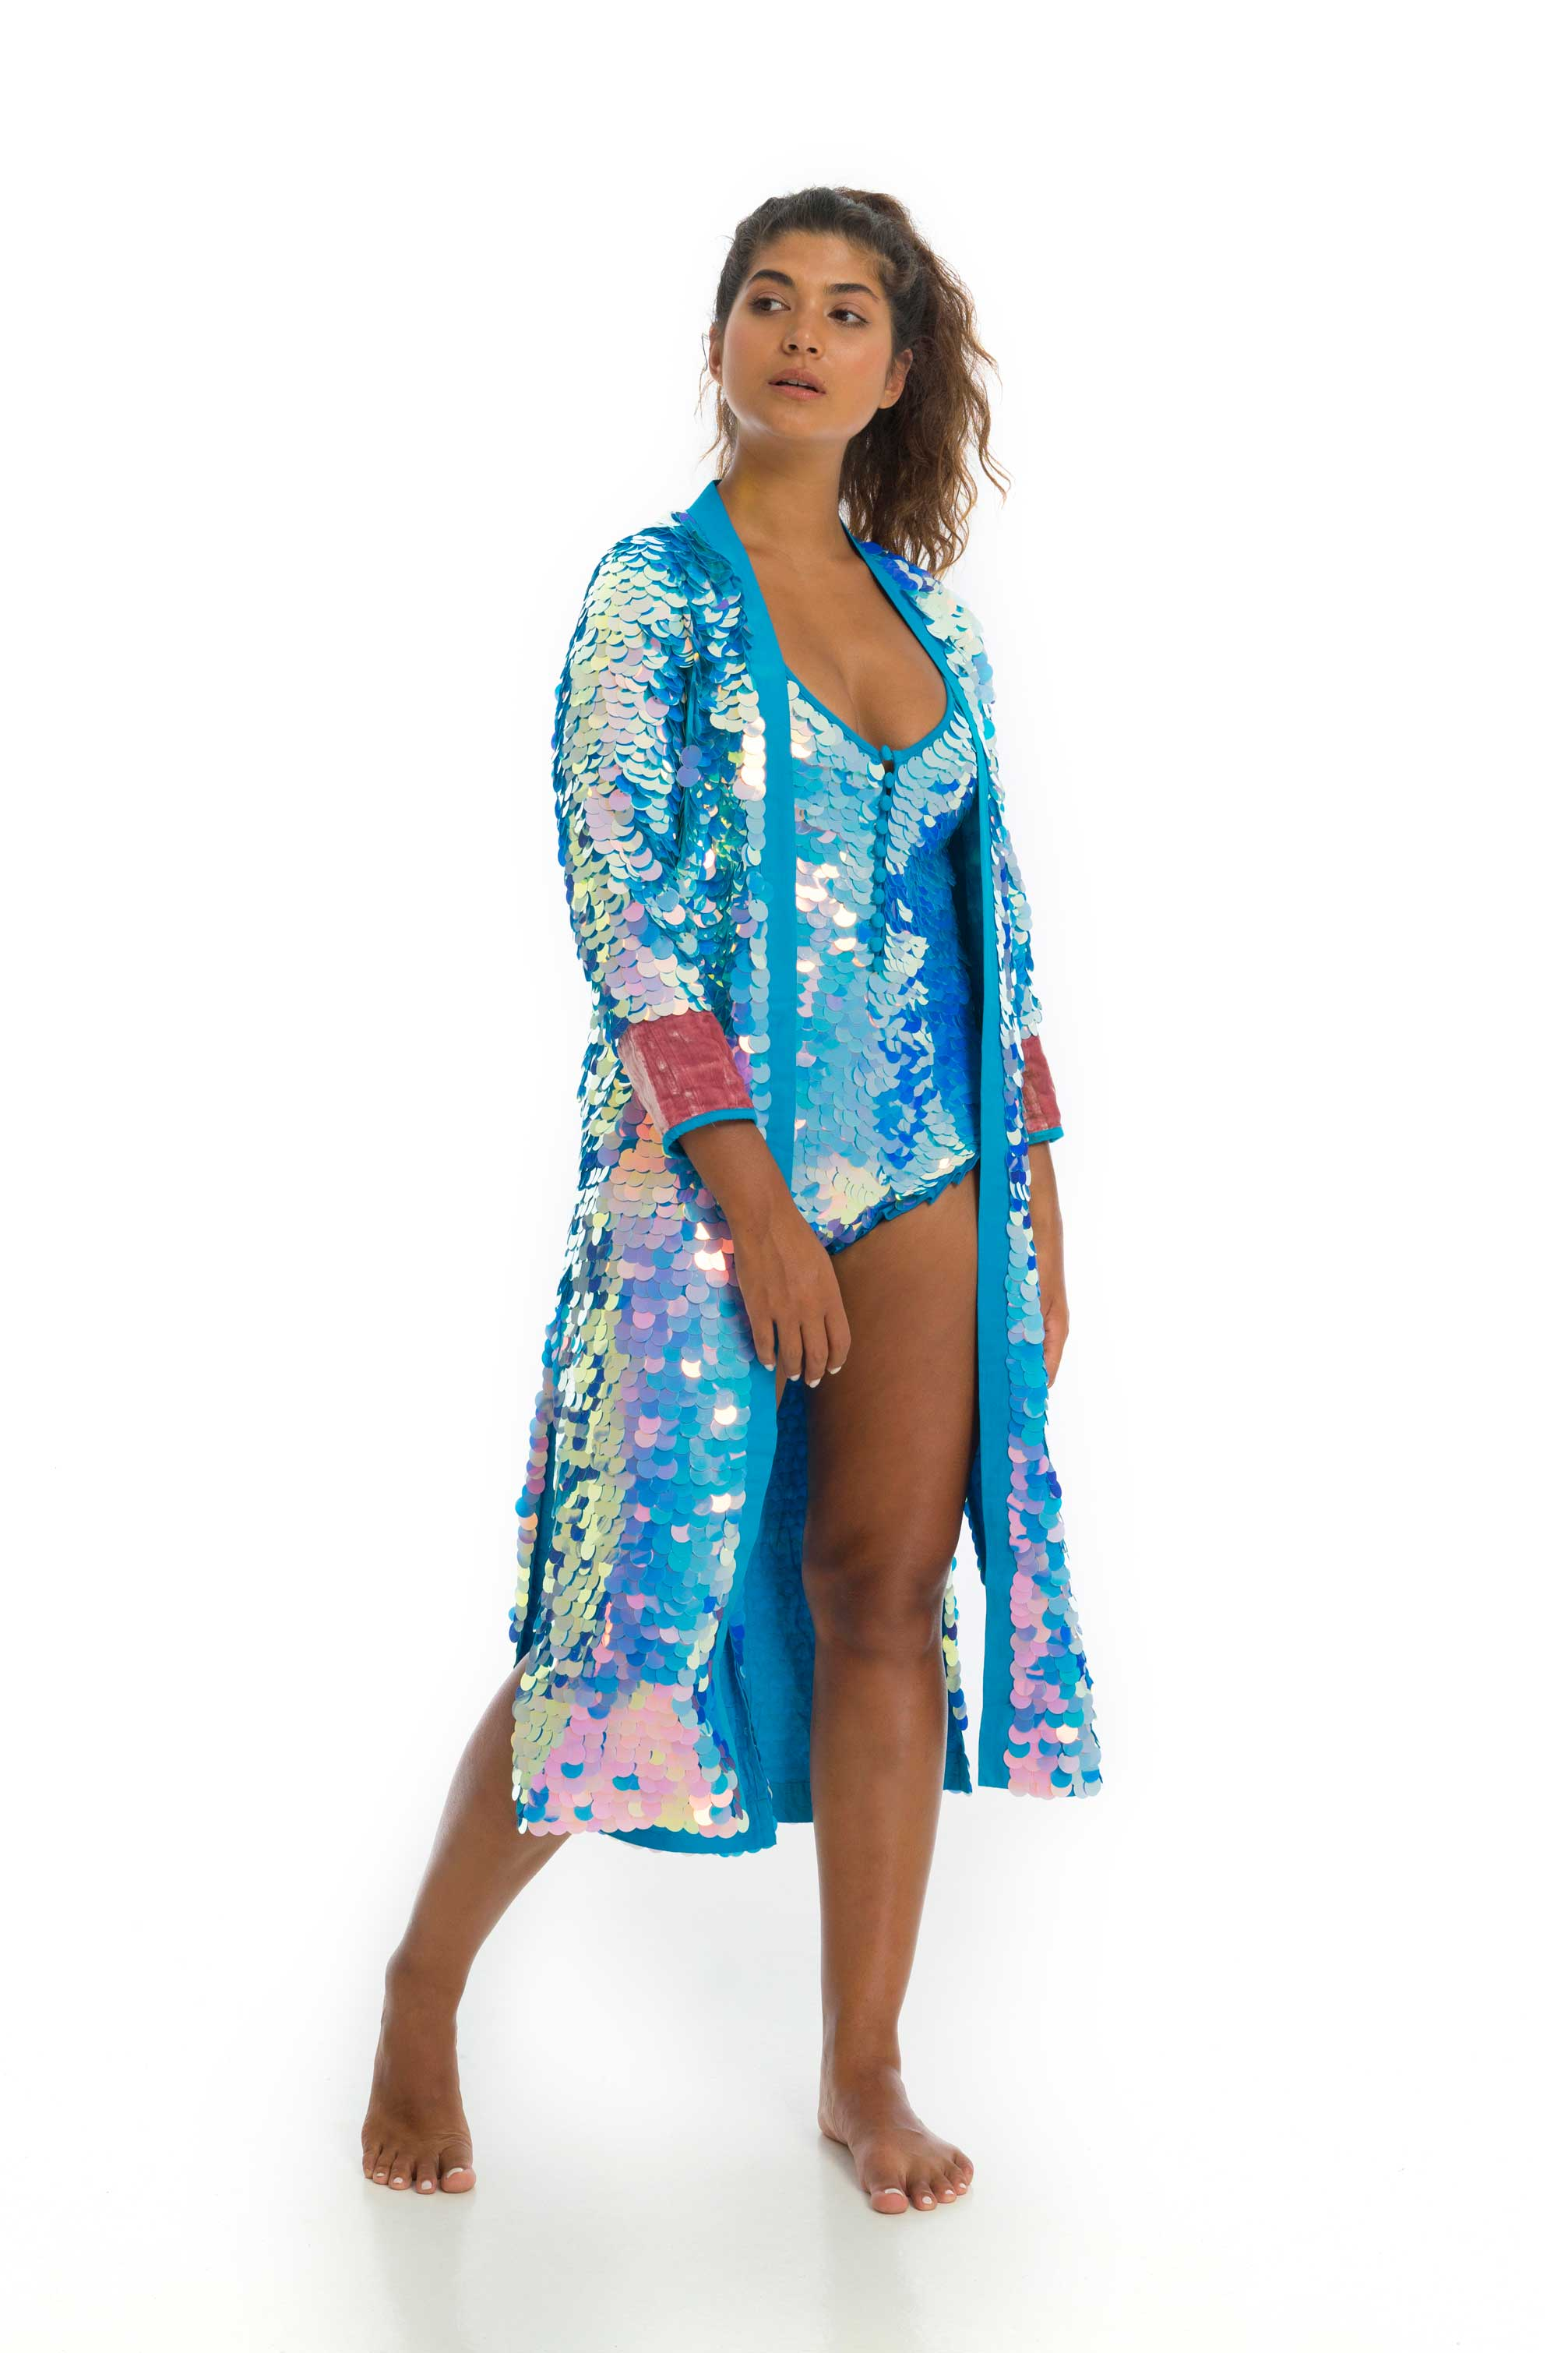 rosa bloom pale blue and lilac two tone iridescent moonrise sequinned duster jacket with pink velvet cuffs